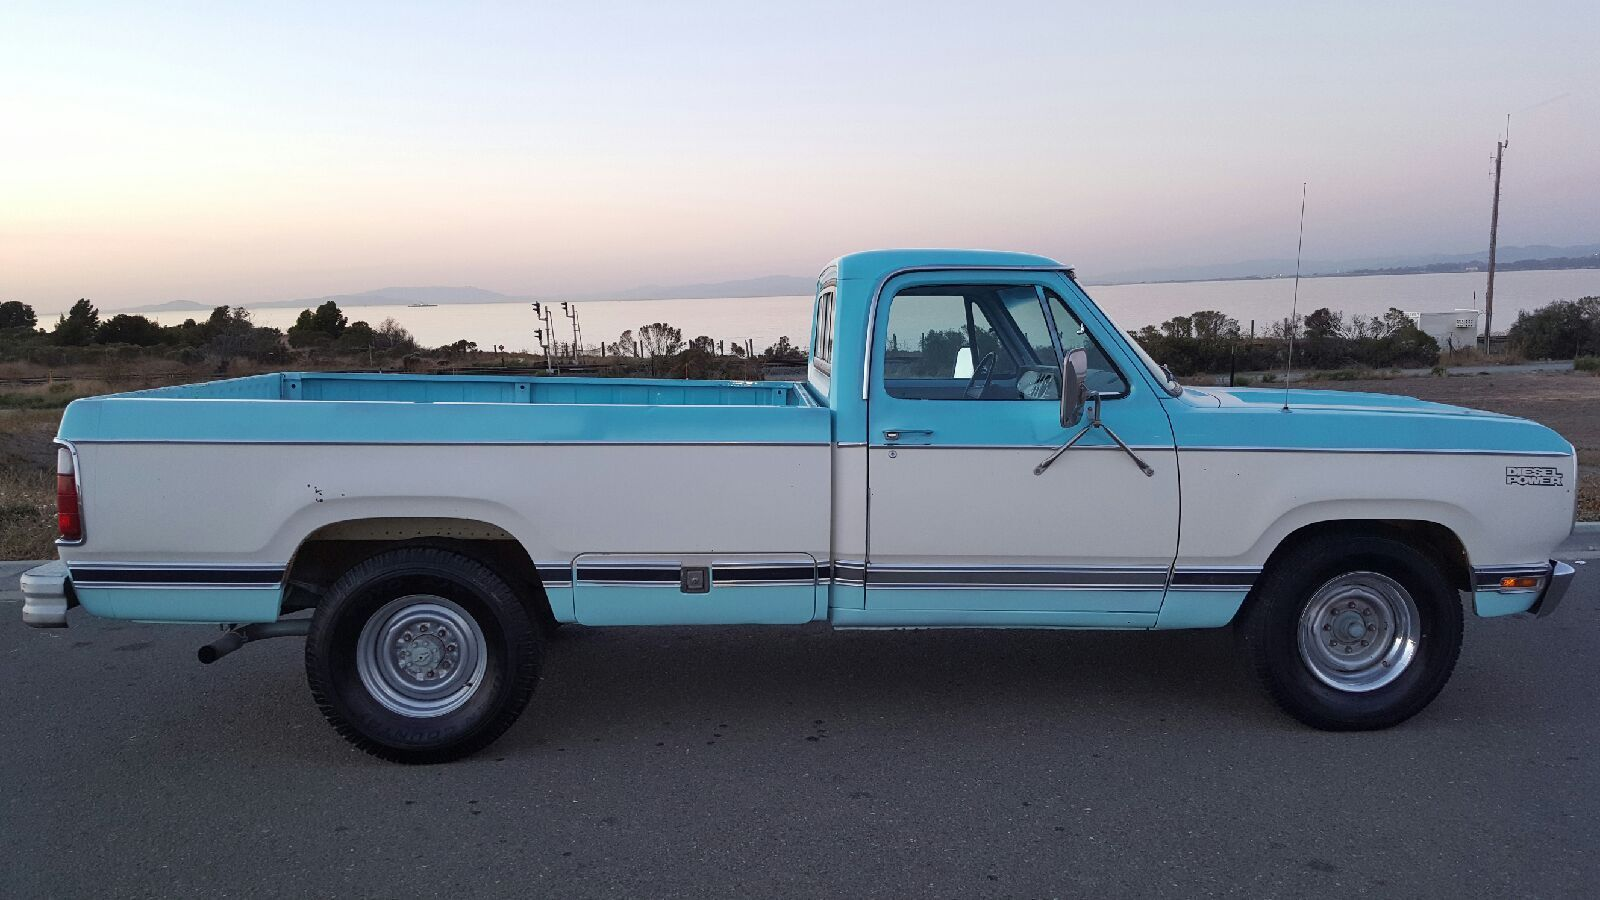 Automotive History The Case Of The Very Rare 1978 Dodge Diesel Pickup And The Missing Diesel Van Curbside Classic